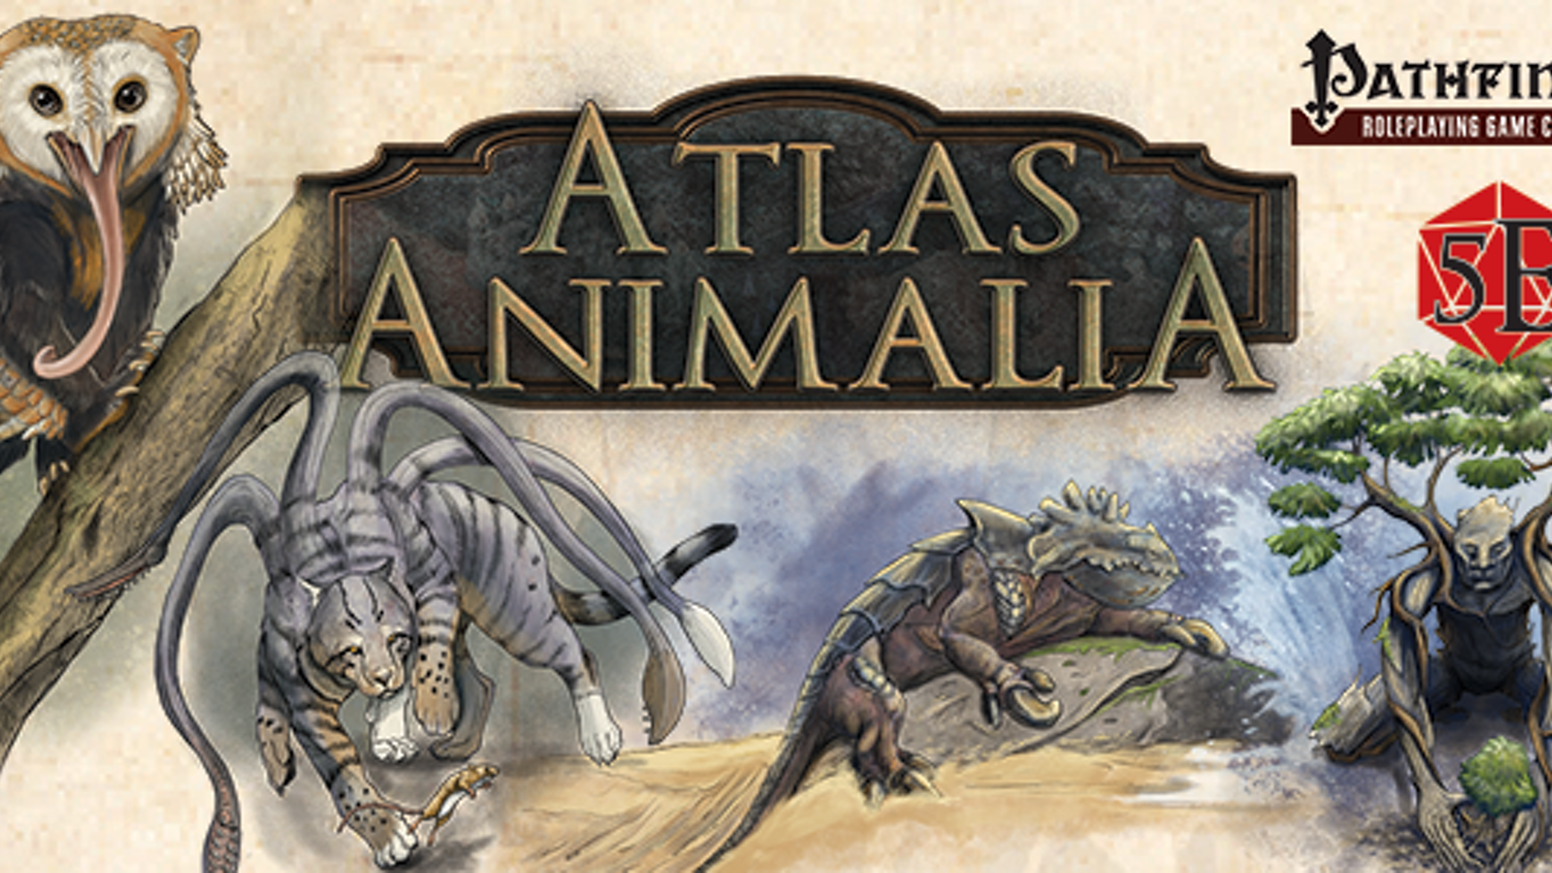 Atlas Animalia A Book Of Monster Variants By Andreas Walters